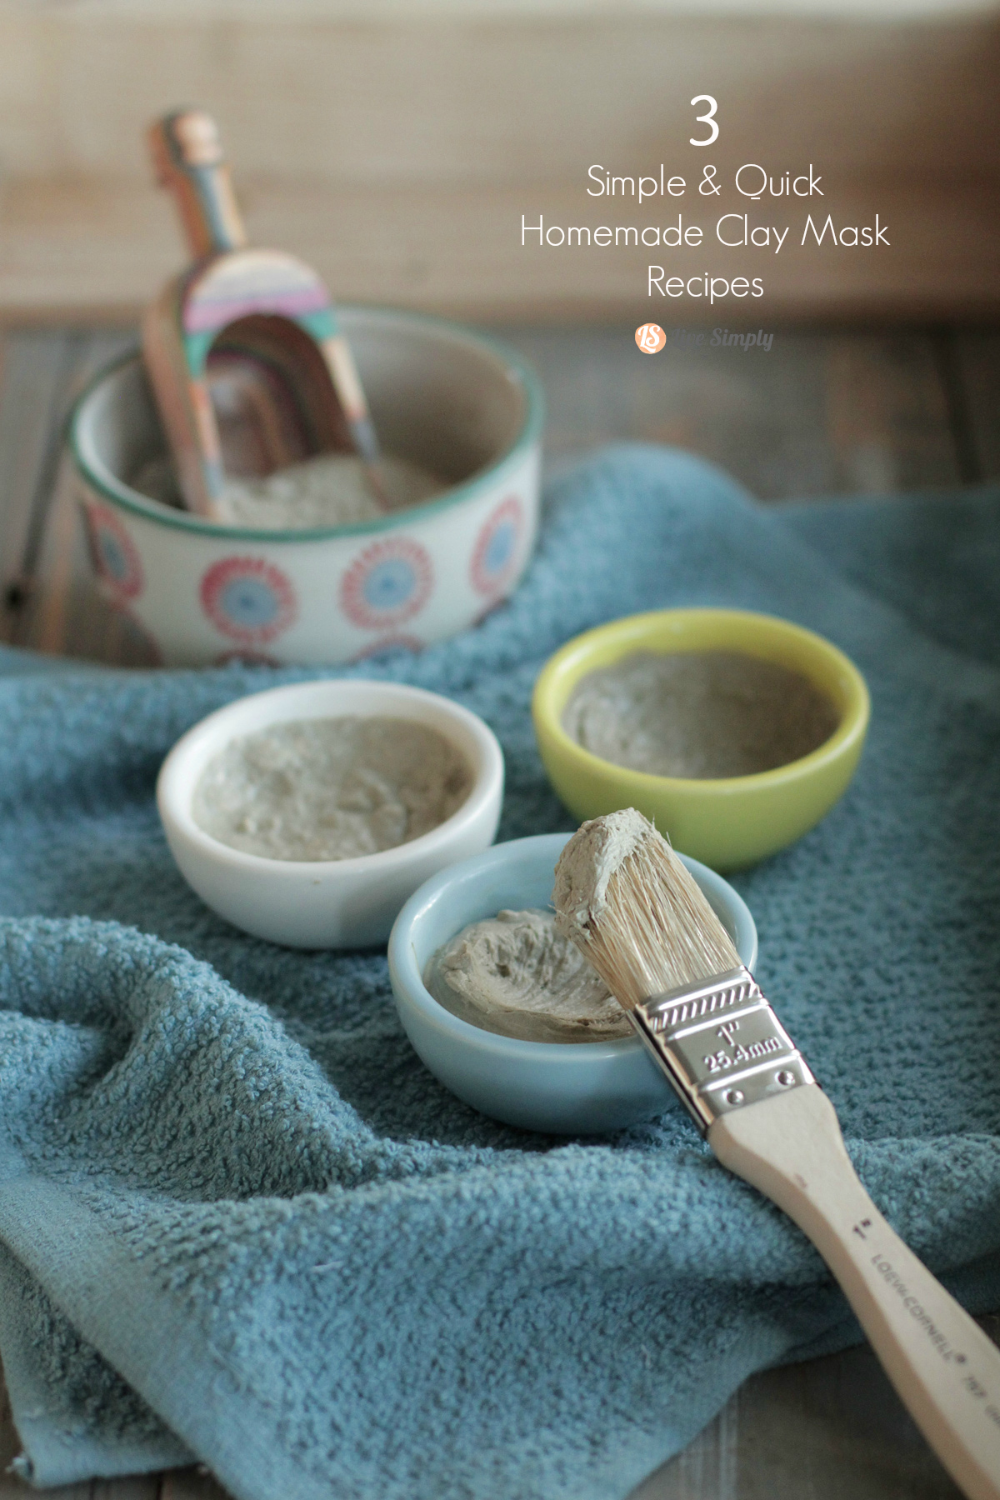 3 Simple & Quick Homemade Clay Mask Recipes #homemadefacelotion